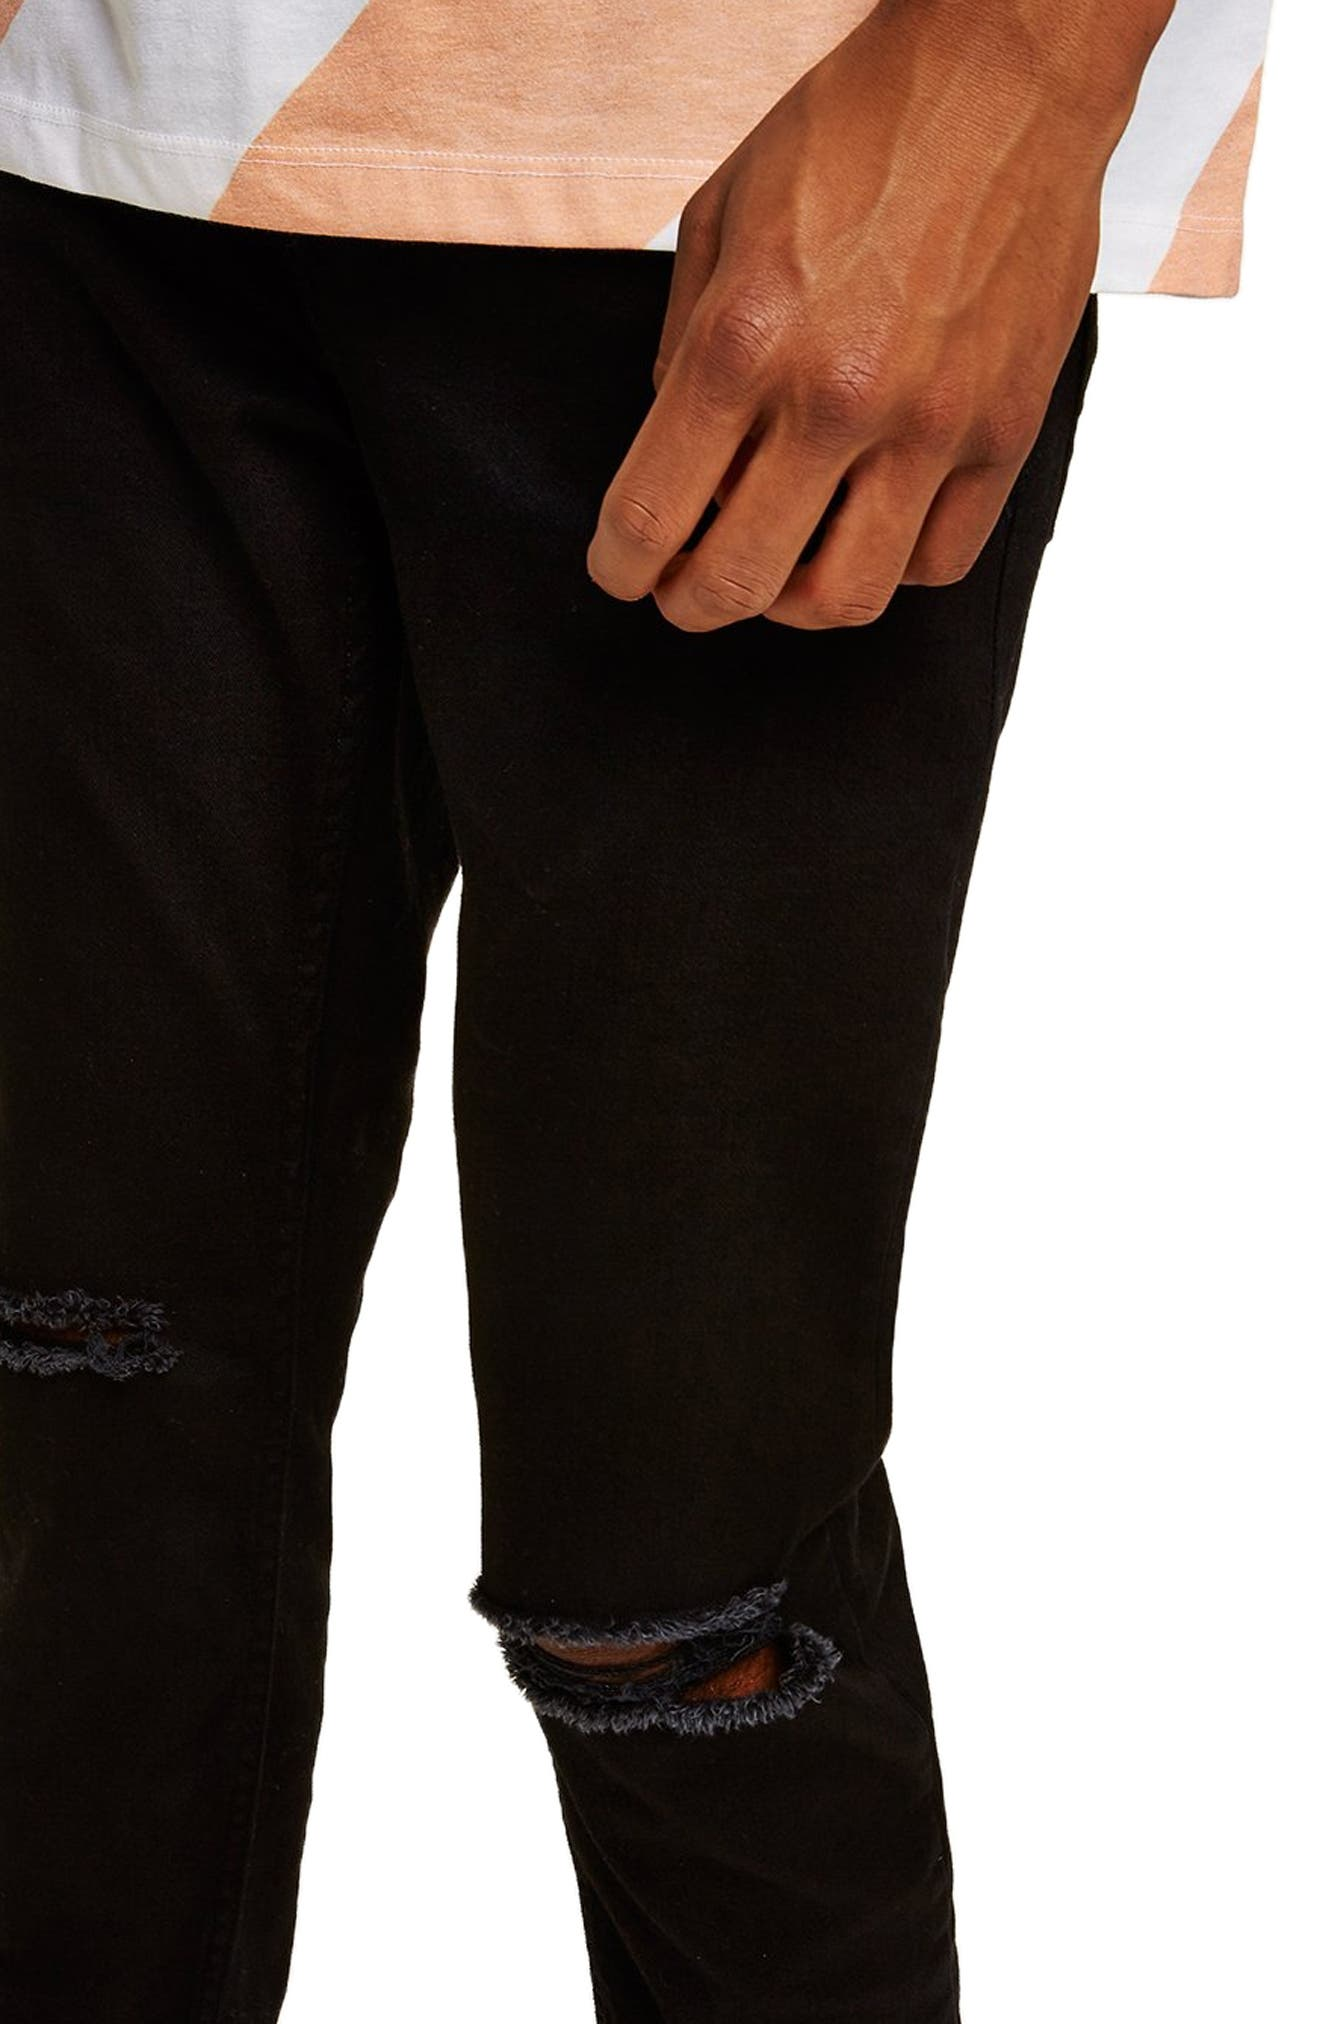 TOPMAN, Double Ripped Skinny Fit Jeans, Alternate thumbnail 4, color, BLACK